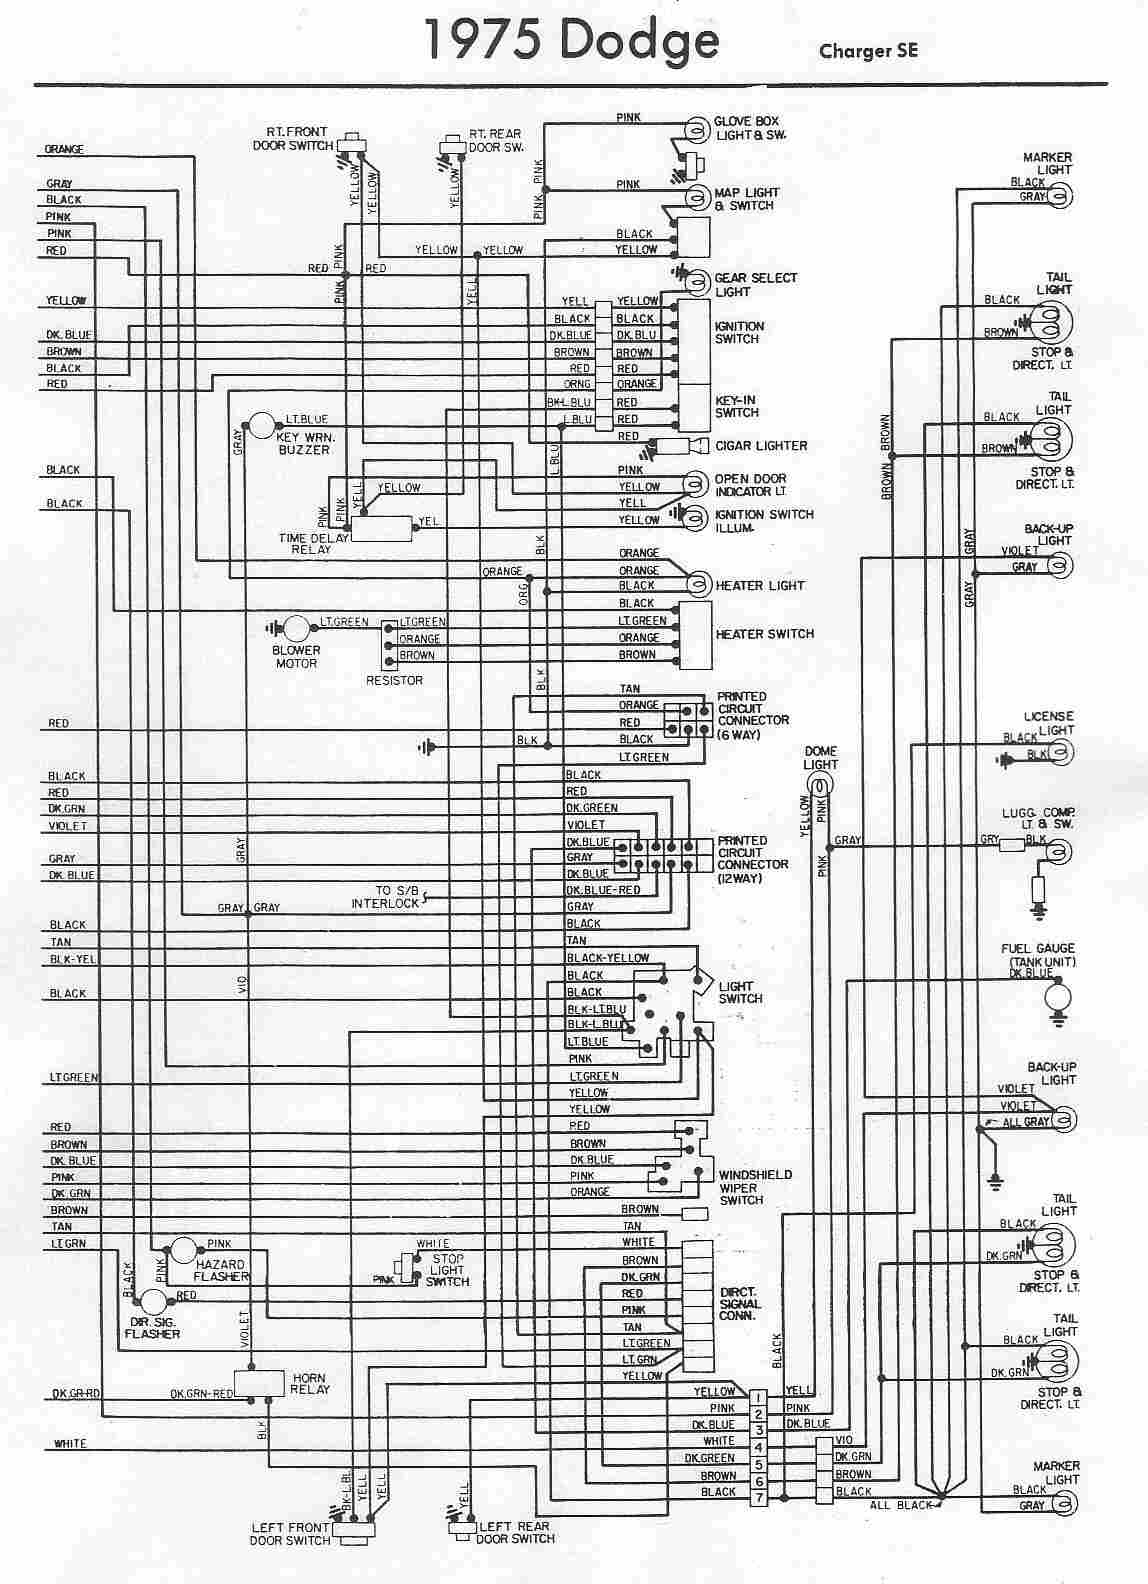 Awesome 2006 Dodge Charger Wiring Diagram Gallery Electrical